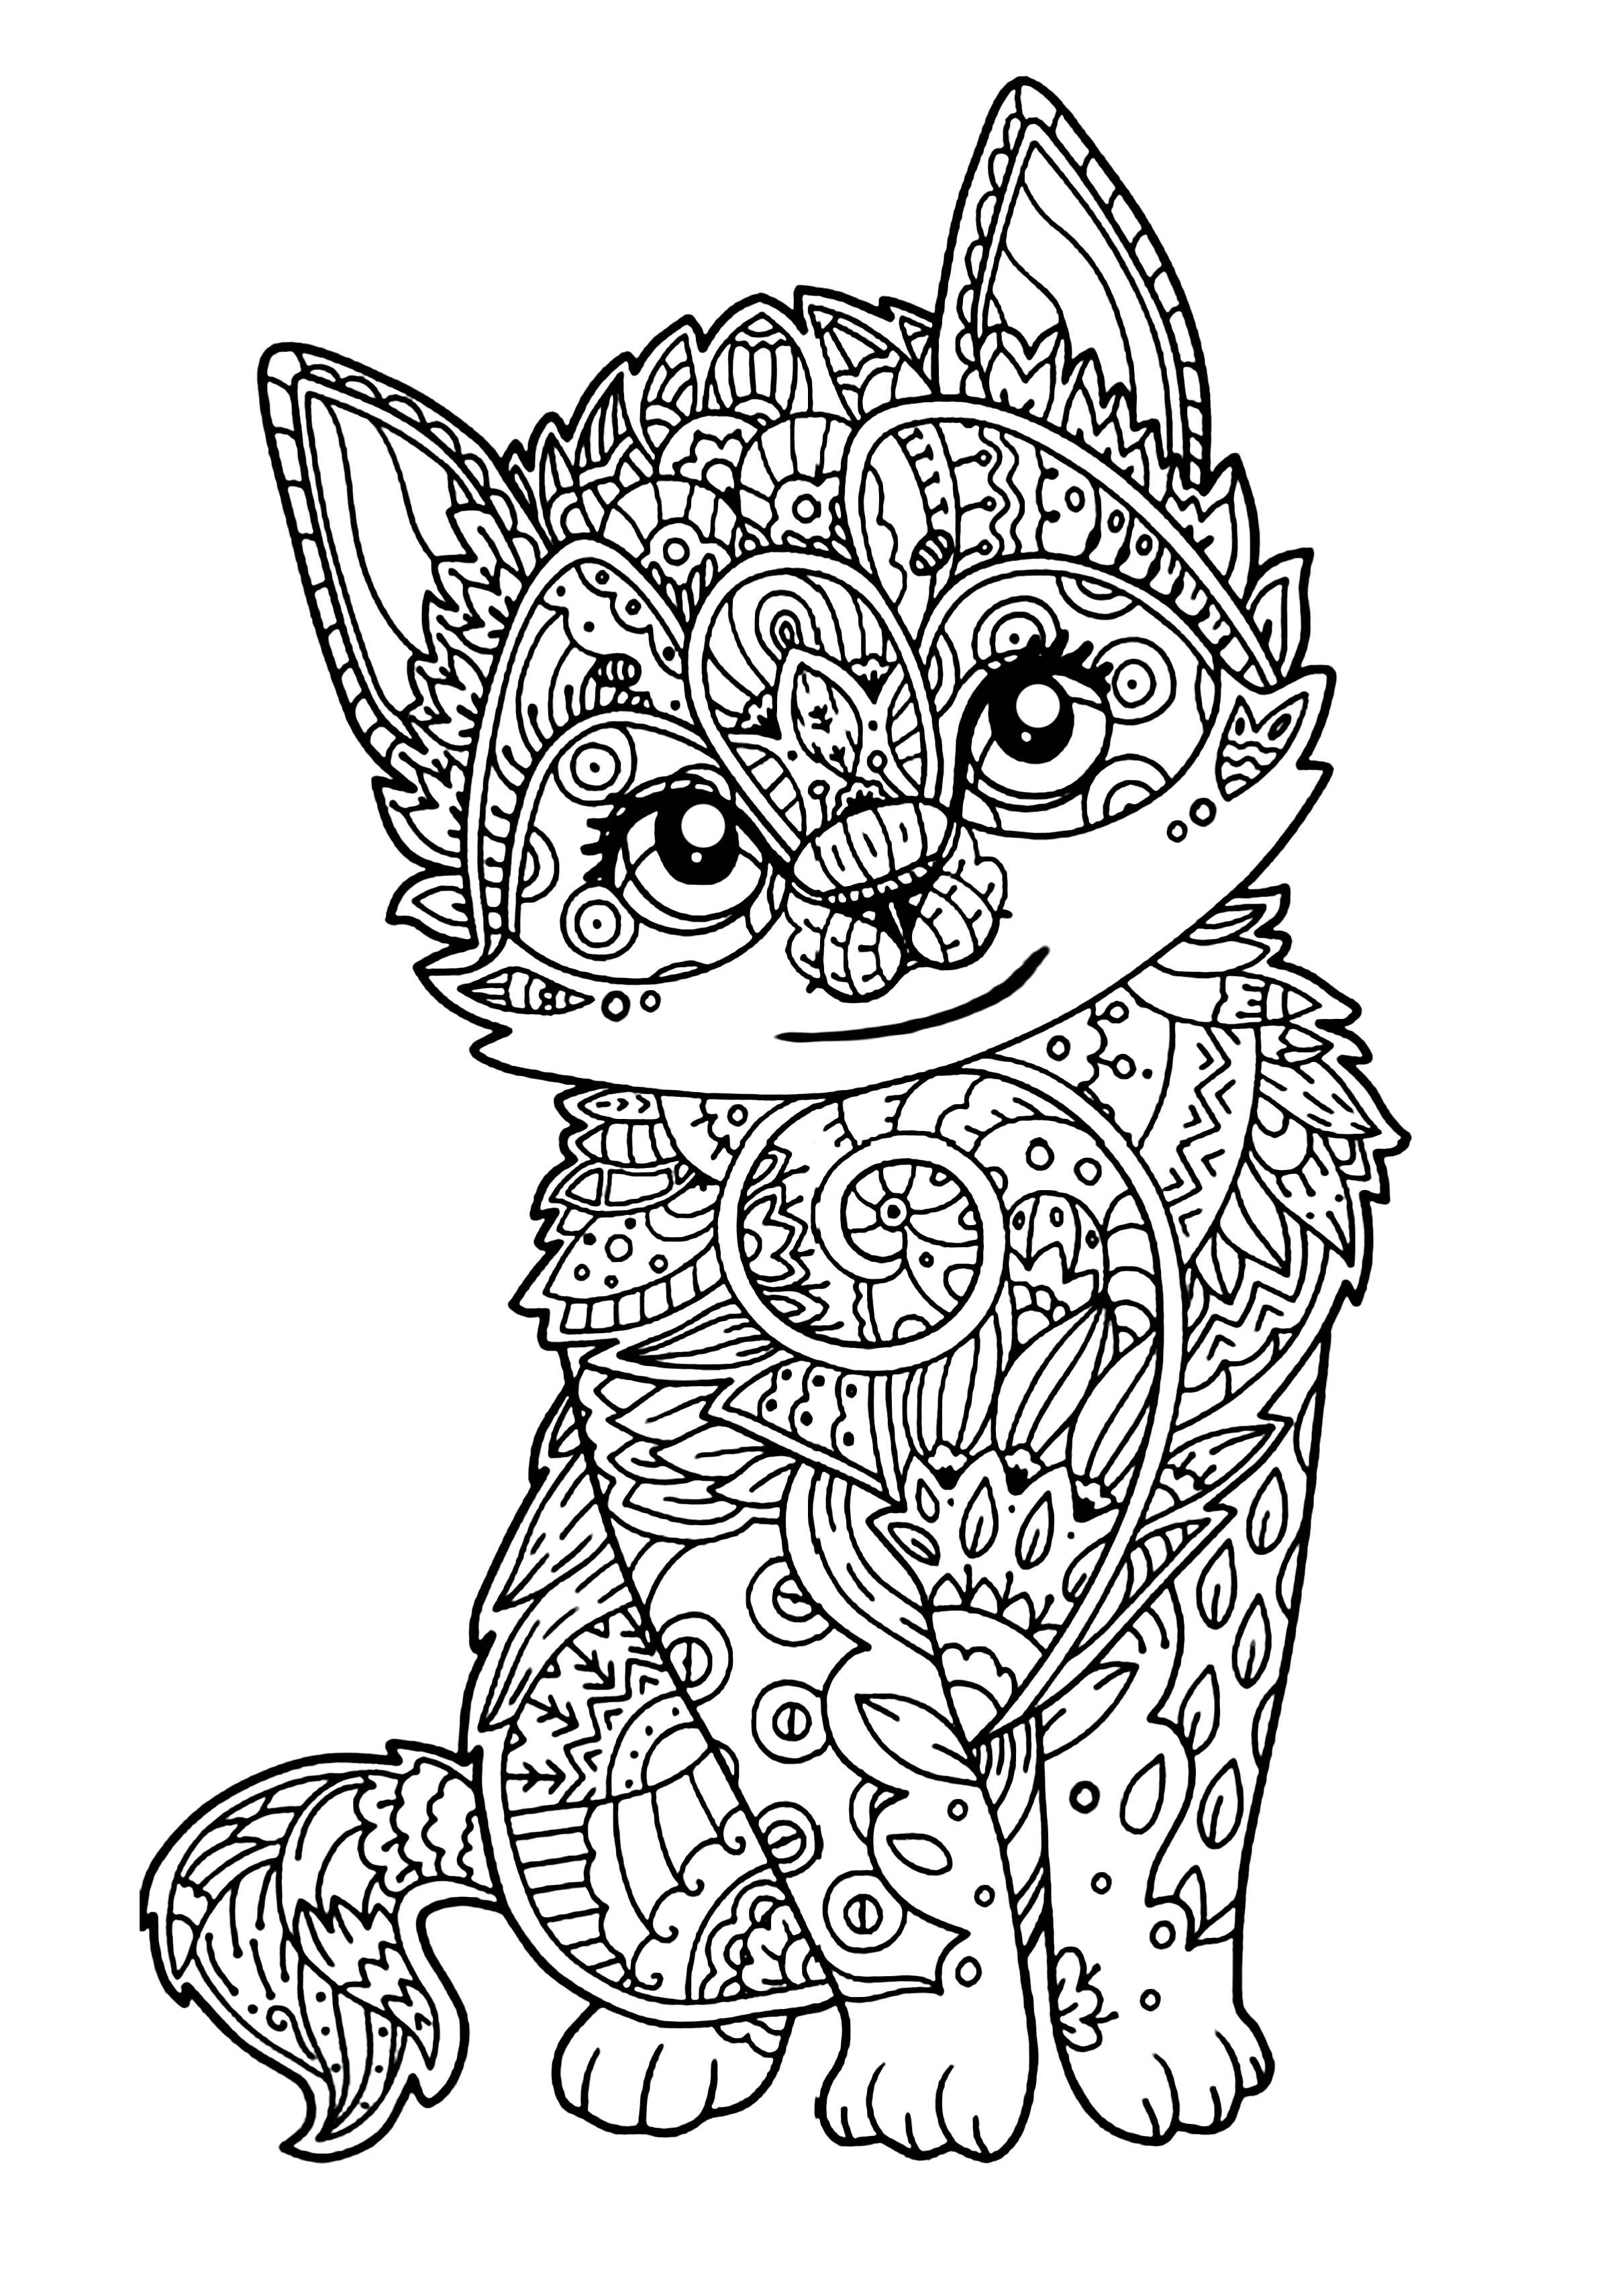 Here are Complex Coloring pages